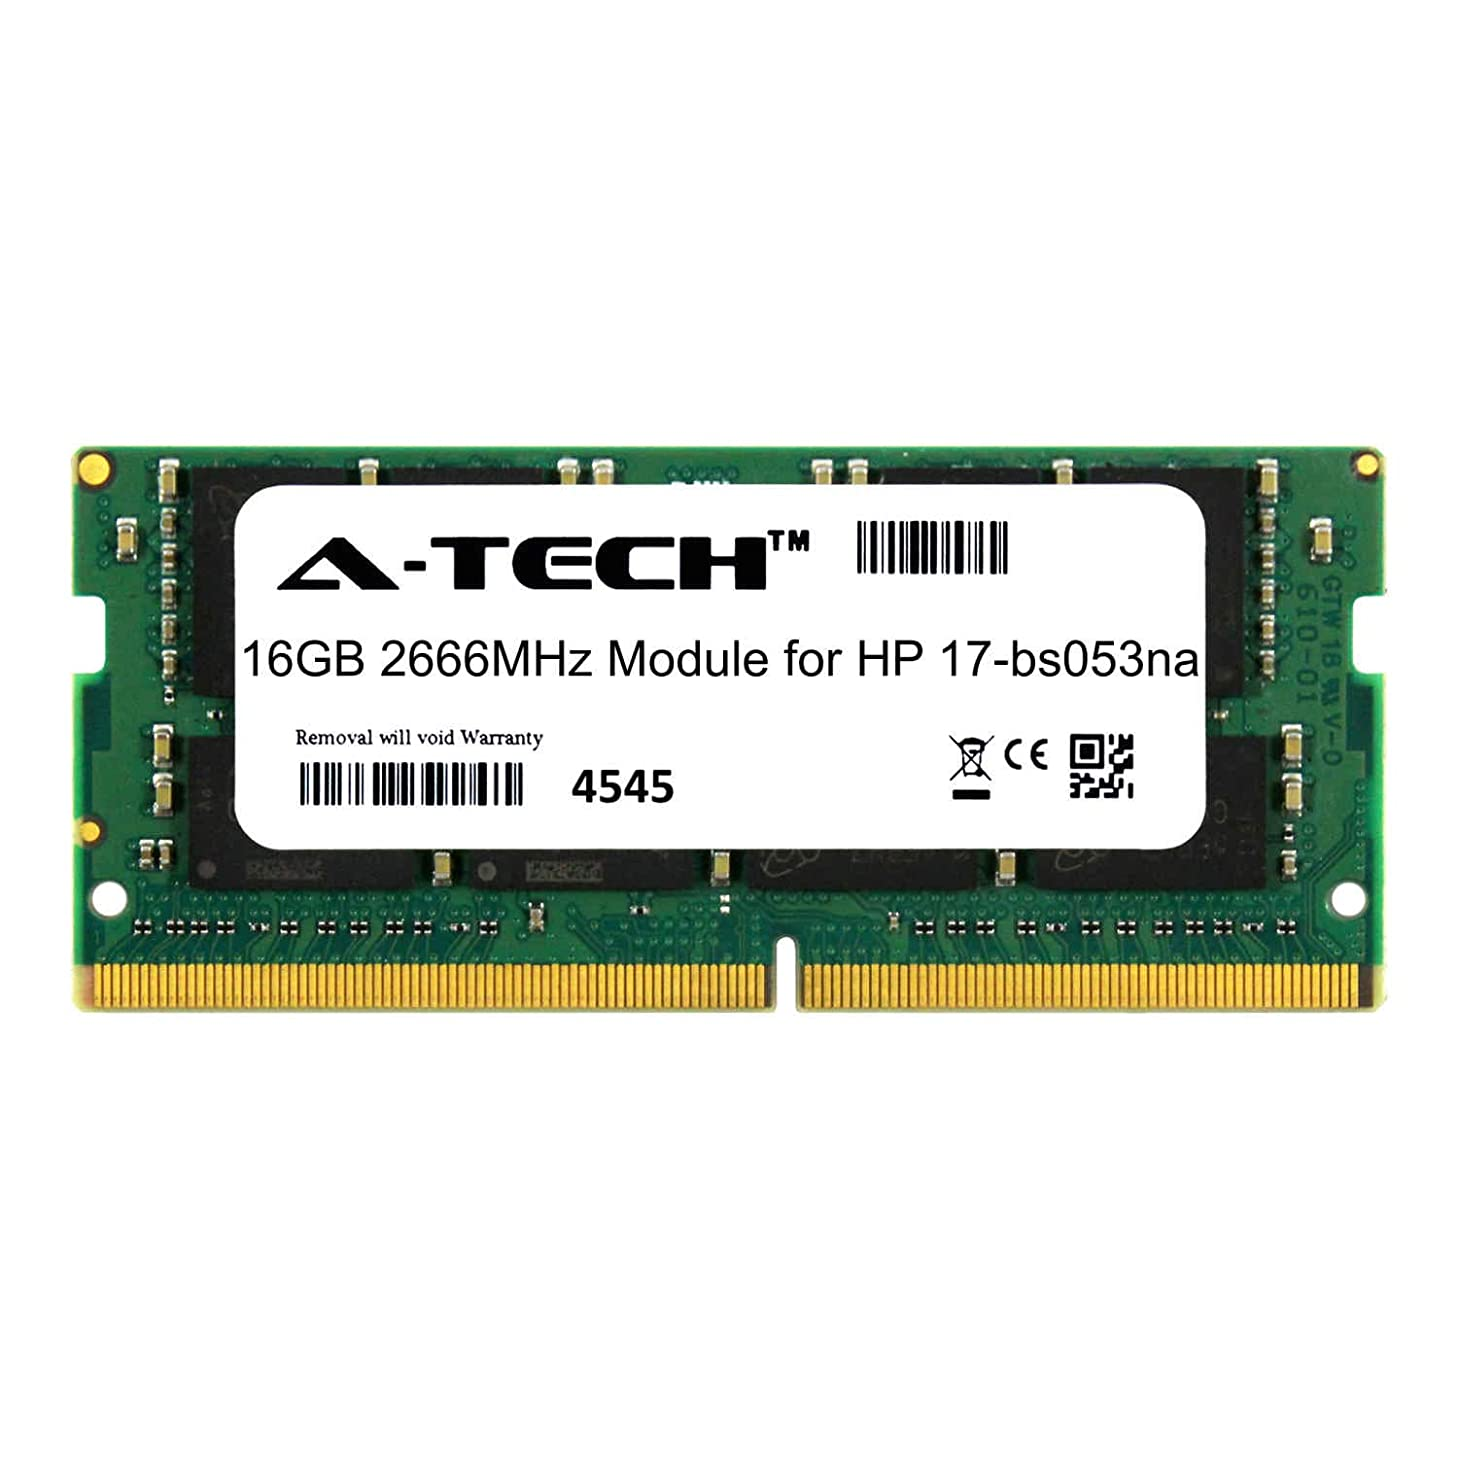 A-Tech 16GB Module for HP 17-bs053na Laptop & Notebook Compatible DDR4 2666Mhz Memory Ram (ATMS382662A25832X1)